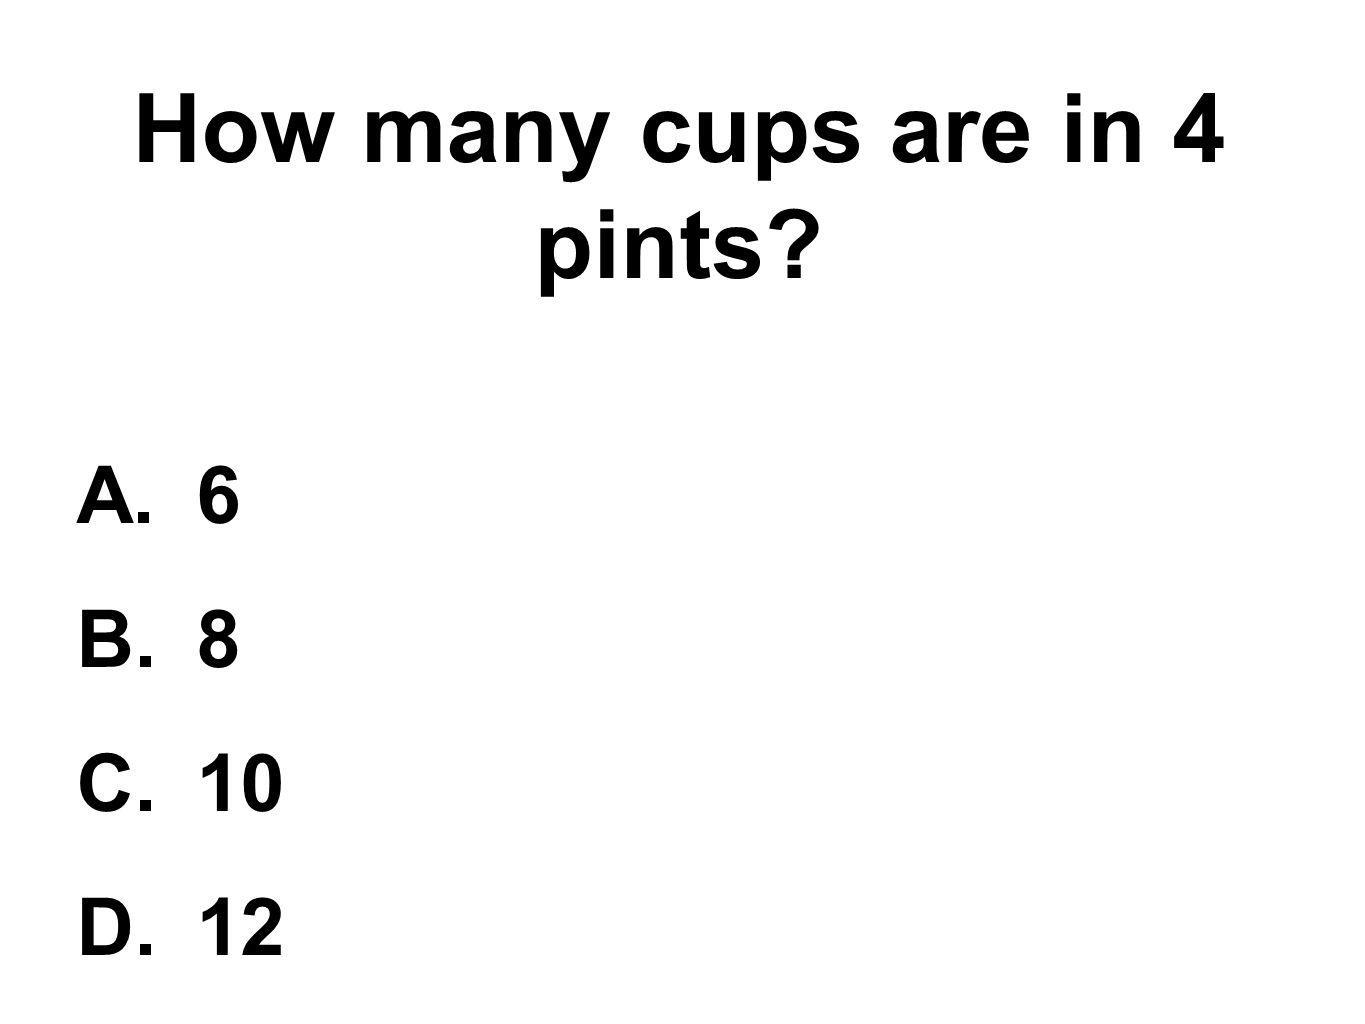 How many cups are in 4 pints? A.6 B.8 C.10 D.12